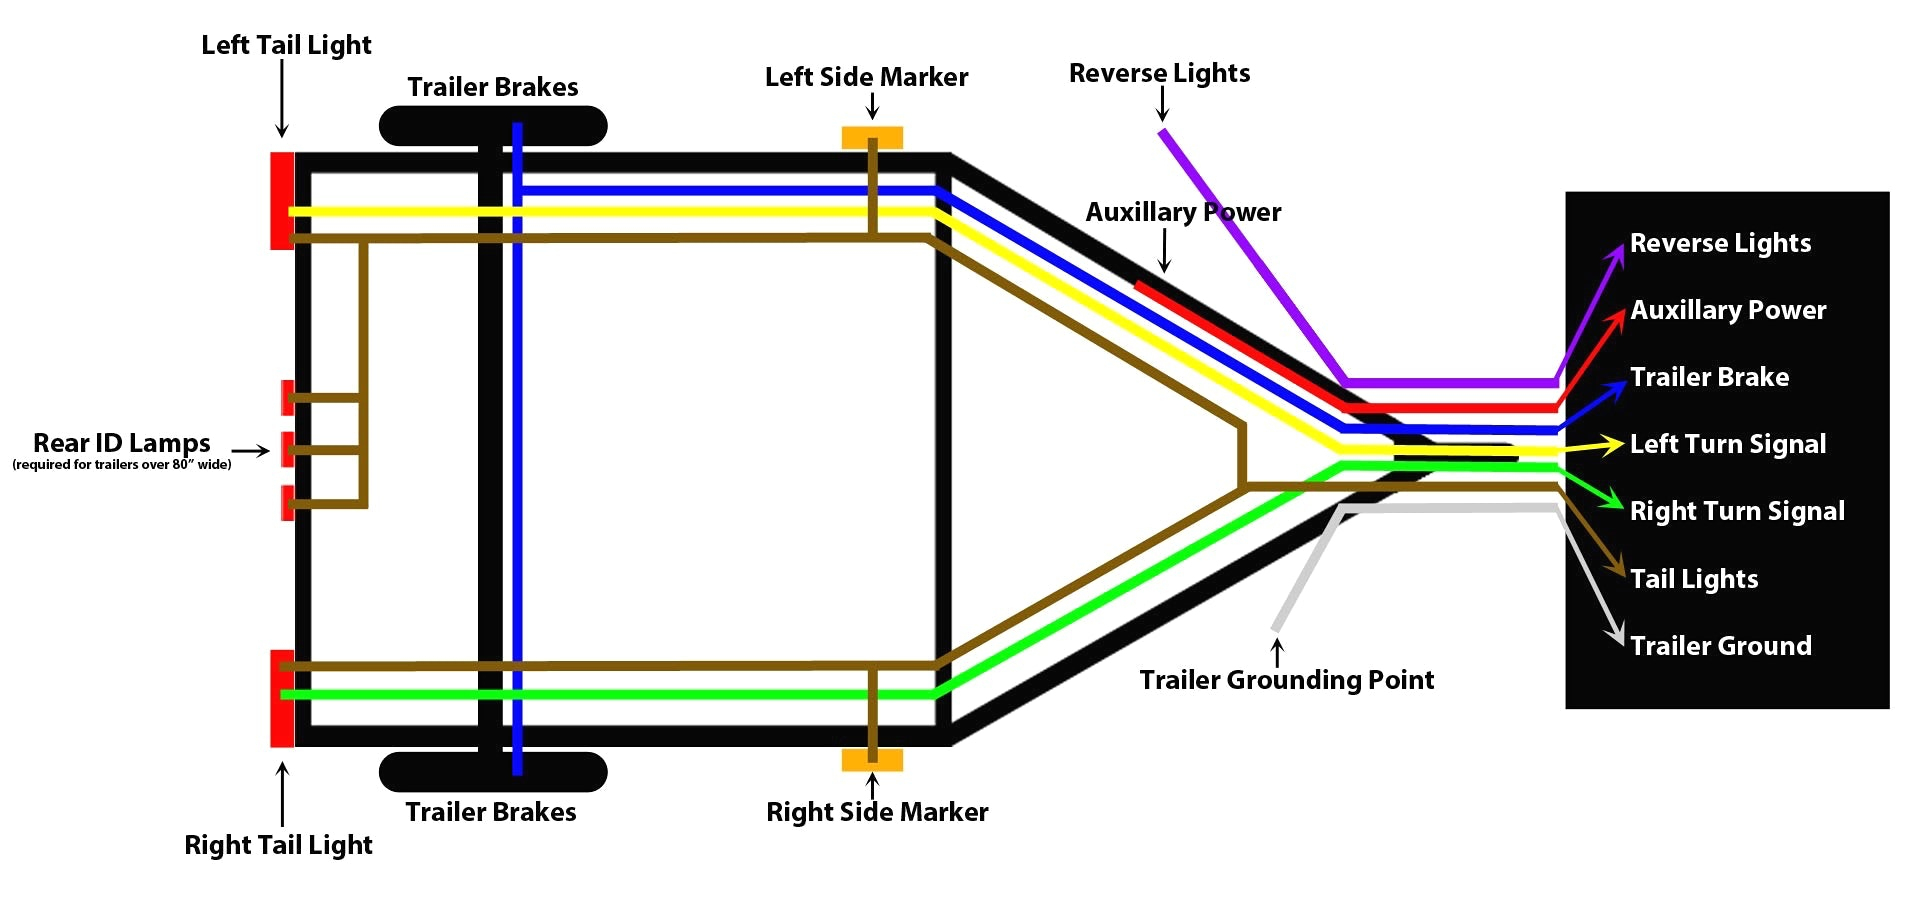 4 Wire Trailer Wiring Diagram Troubleshooting - Free Wiring Diagram - 4 Wire Trailer Wiring Diagram Troubleshooting